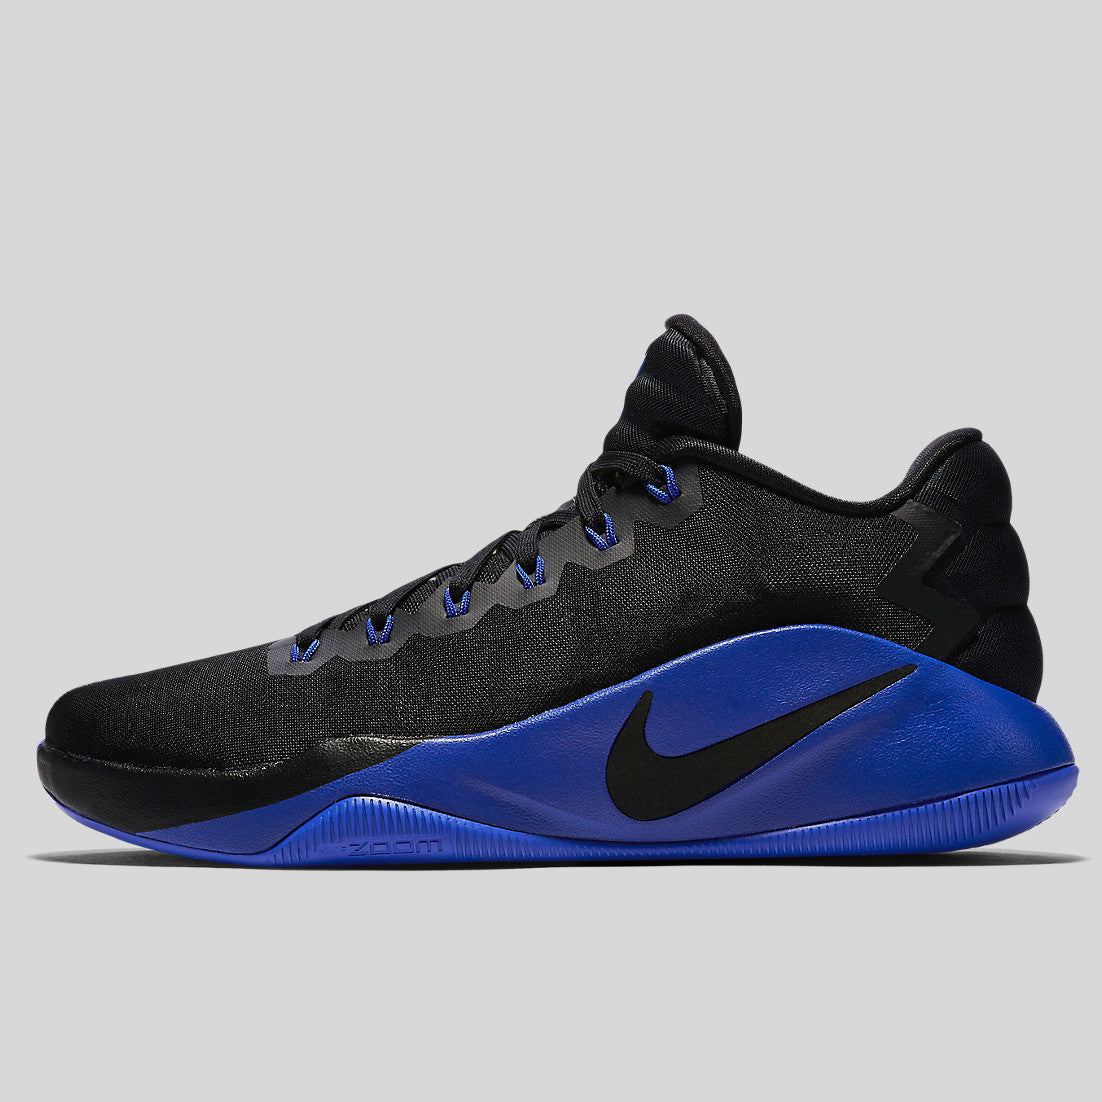 Nike Hyperdunk 2016 Low EP Black Game Royal Dark Grey (844364-040 ... 9cf19ae24